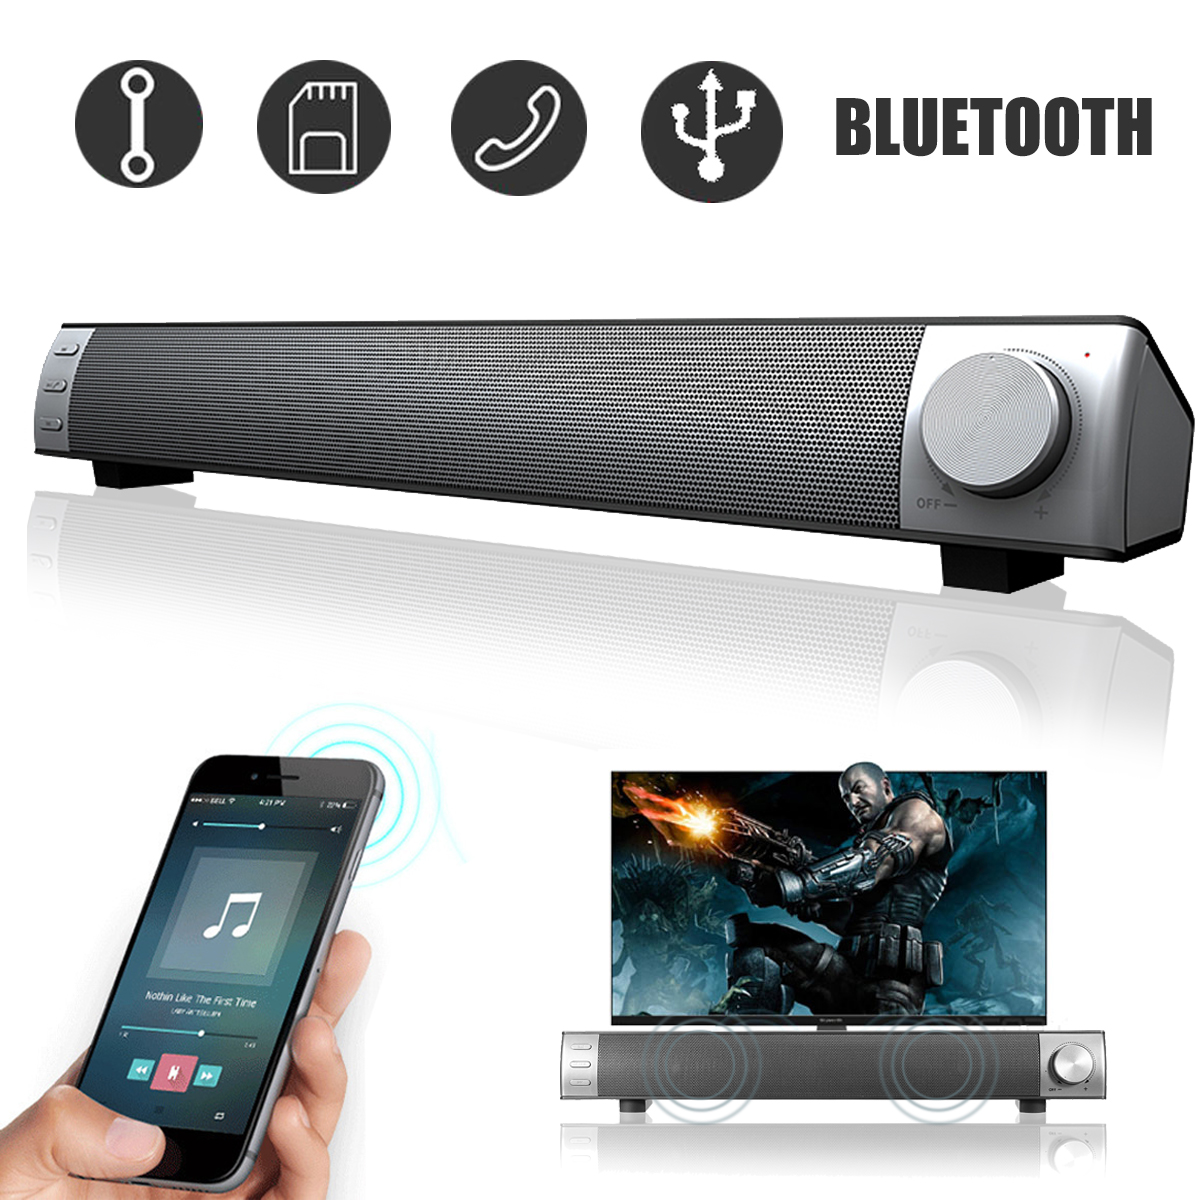 Powerful 360° Stereo 3D Surround Sound Bar Wireless Bluetooth Speaker System Home Theater Amplifier Subwoofer For TV PC Desktop Laptop Tablet Smartphone